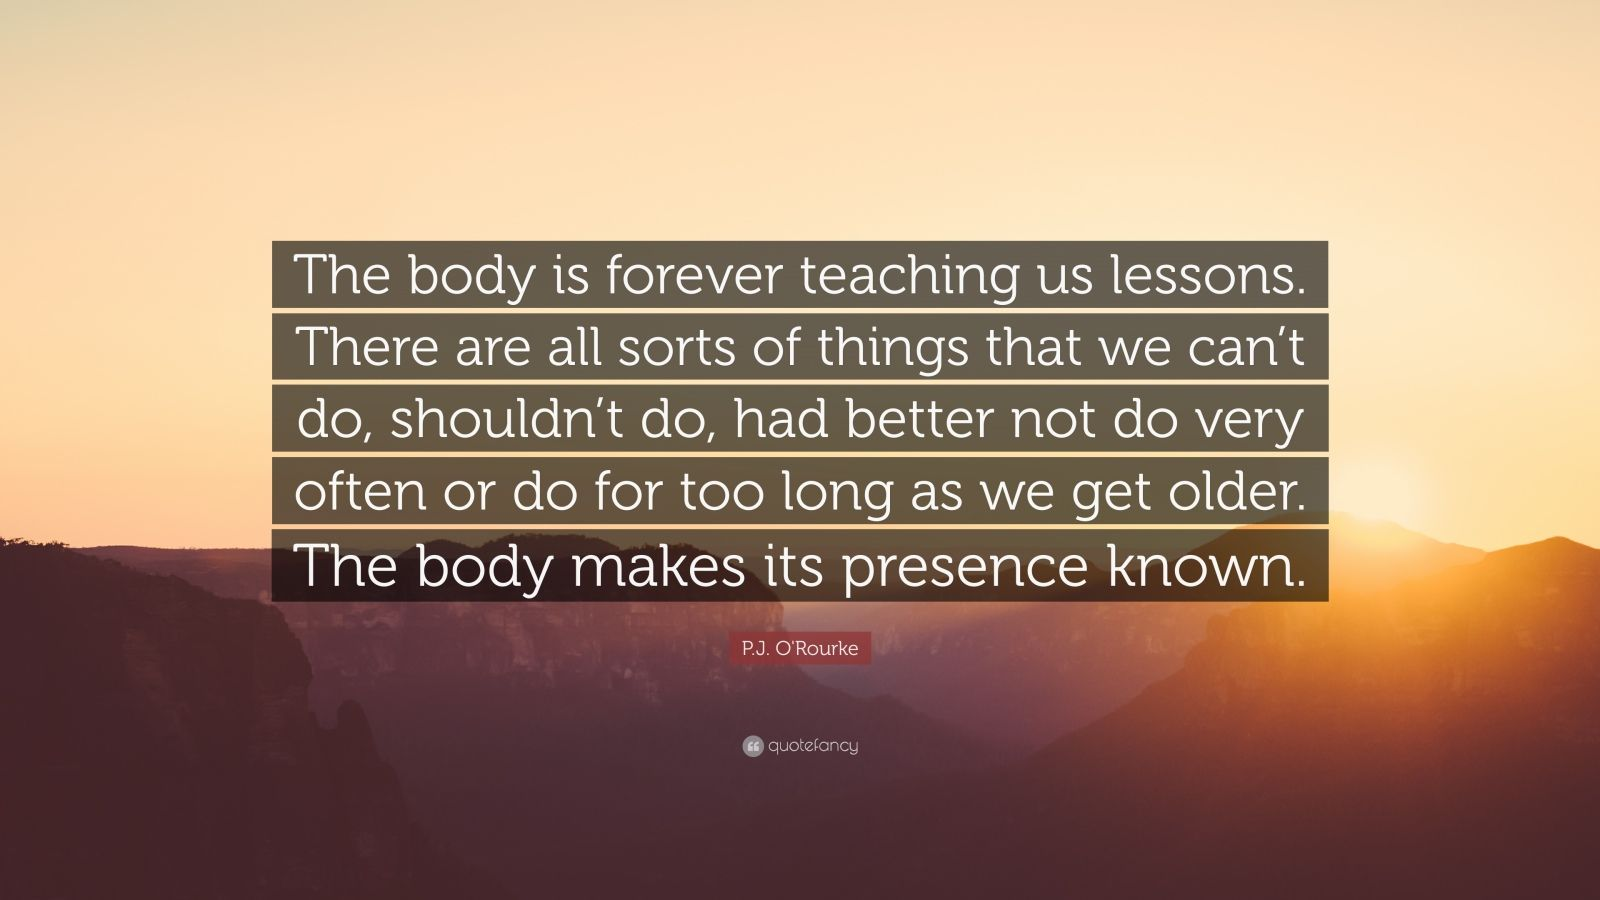 "P.J. O'Rourke Quote: ""The body is forever teaching us lessons. There are all sorts of things that we can't do, shouldn't do, had better not do very often or do for too long as we get older. The body makes its presence known."""